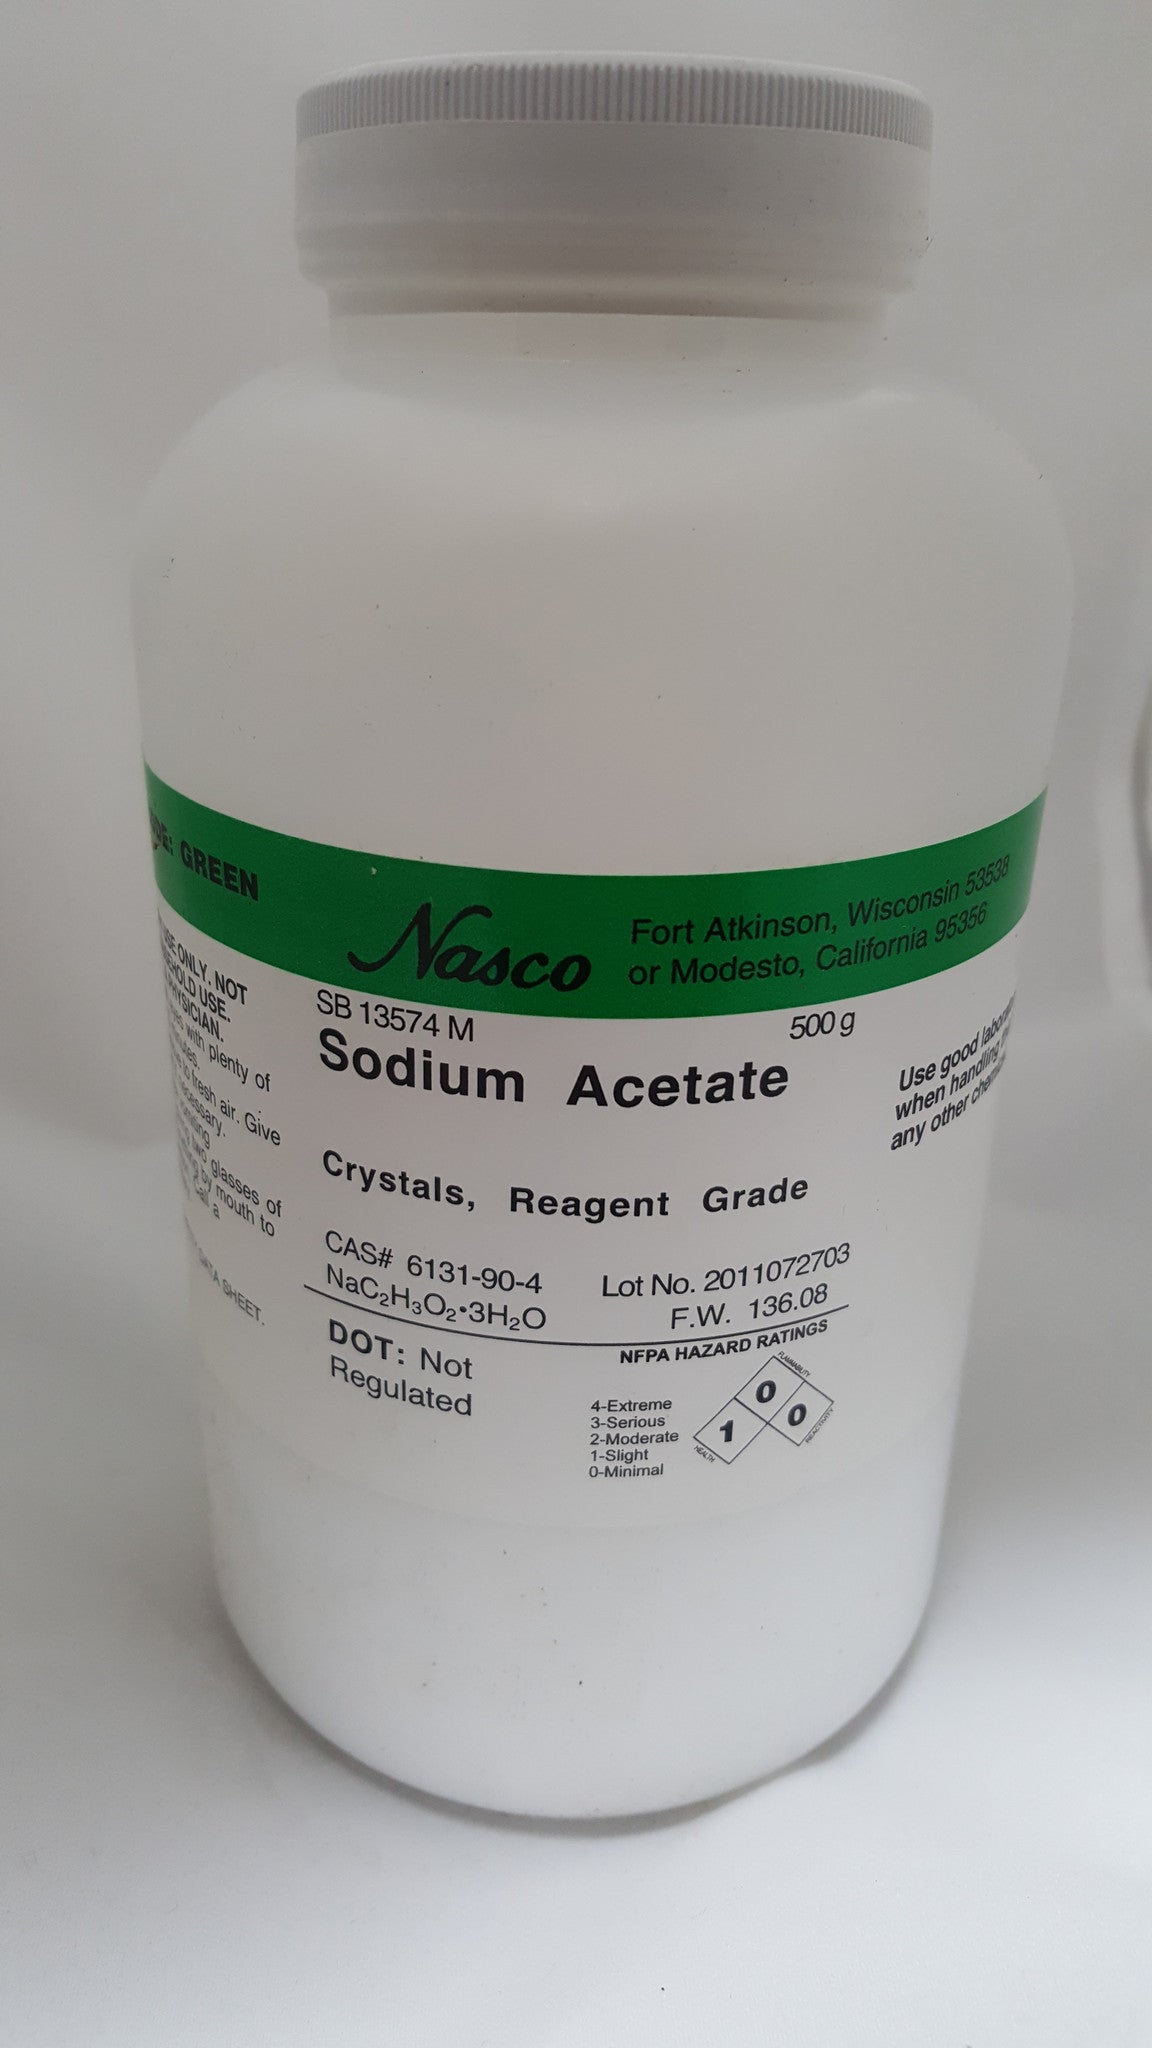 Sodium Acetate - Trihydrate 500g Reagent Grade, Crystals - The Science Shop